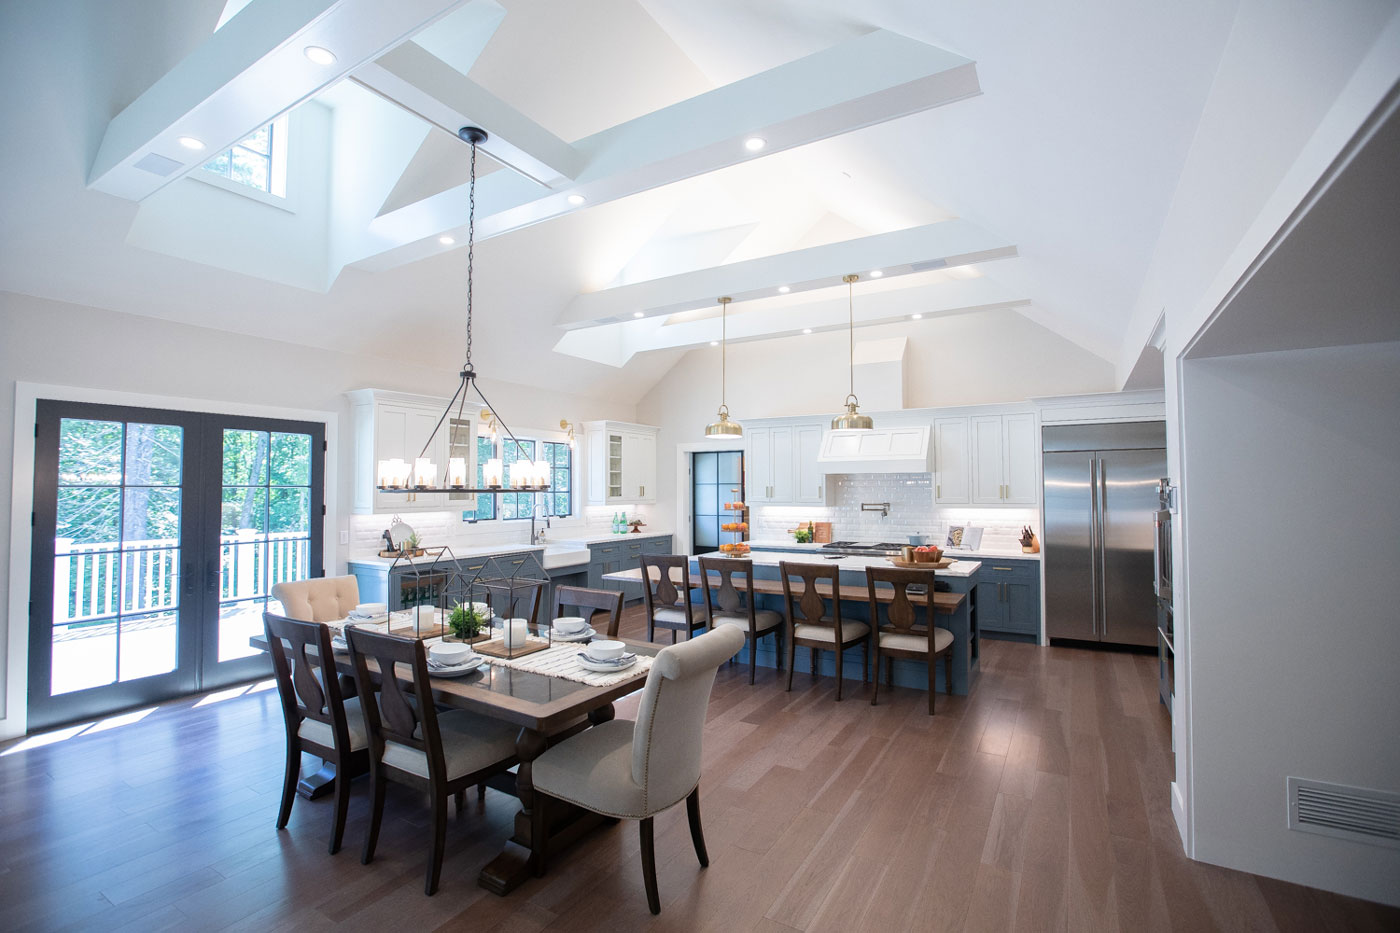 Vaulted living room/dining room and kitchen of a specially adapted smart home, constructed through the R.I.S.E. program at the Gary Sinise Foundation